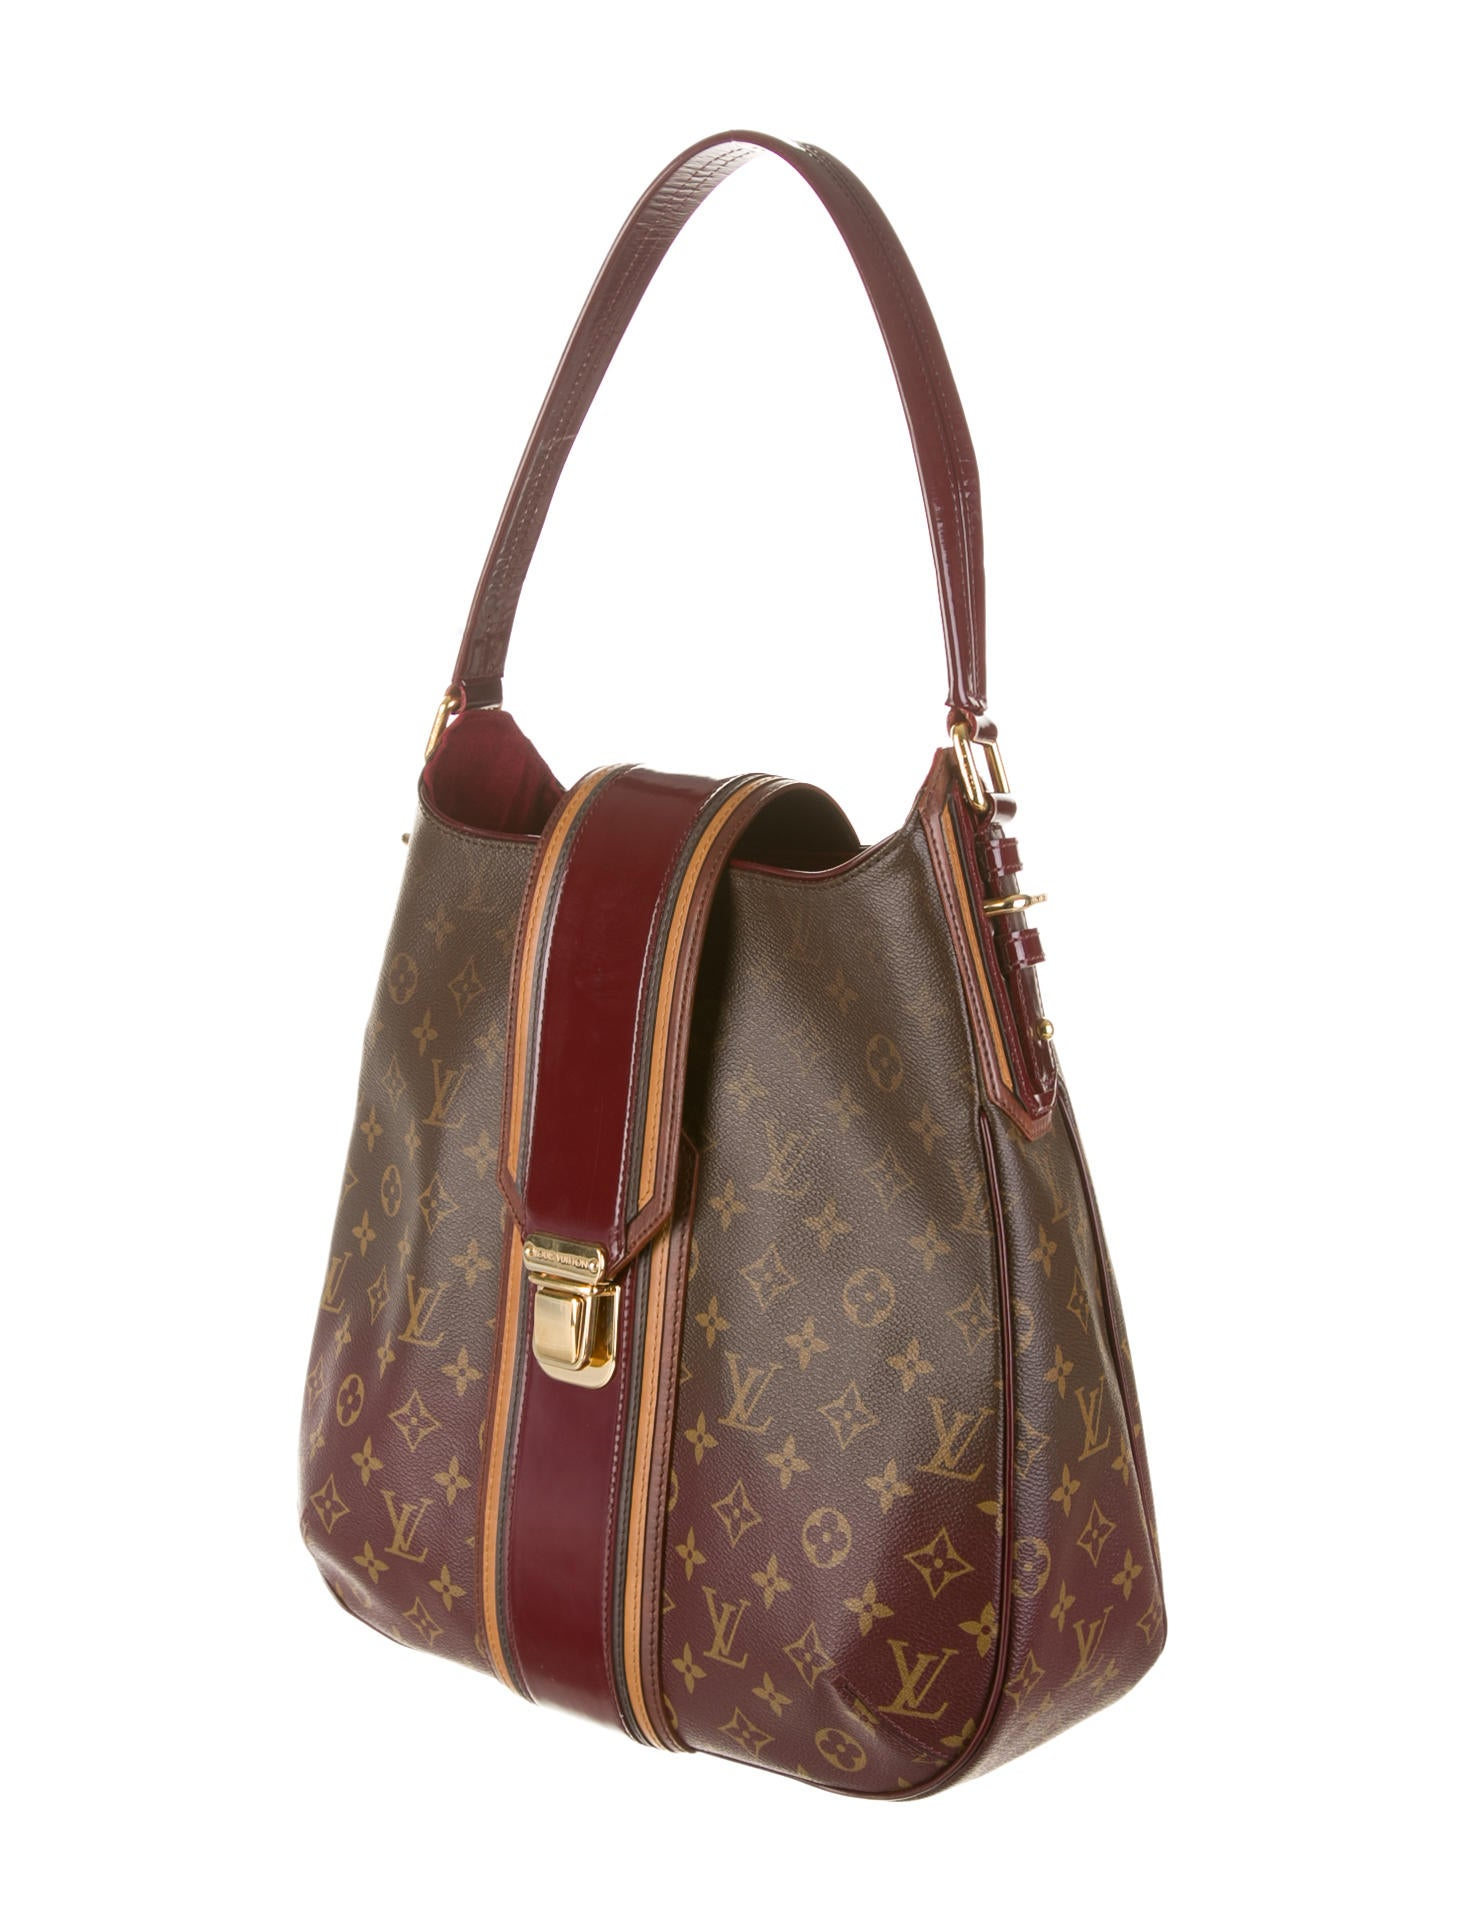 louis vuitton mirage musette bag handbags lou39775 the realreal. Black Bedroom Furniture Sets. Home Design Ideas